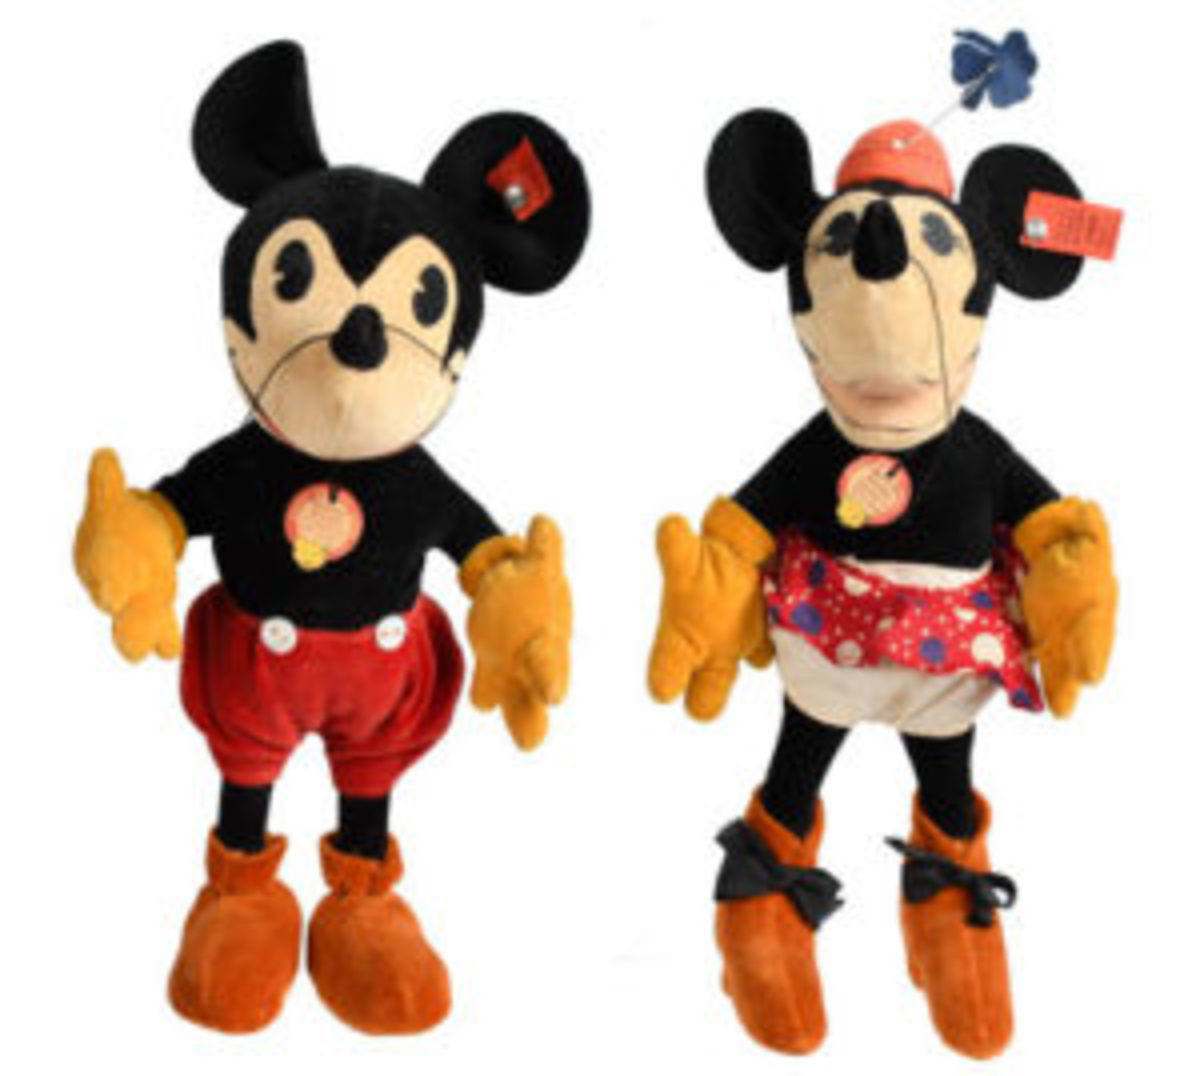 Mickey and Minnie Mouse soft dolls